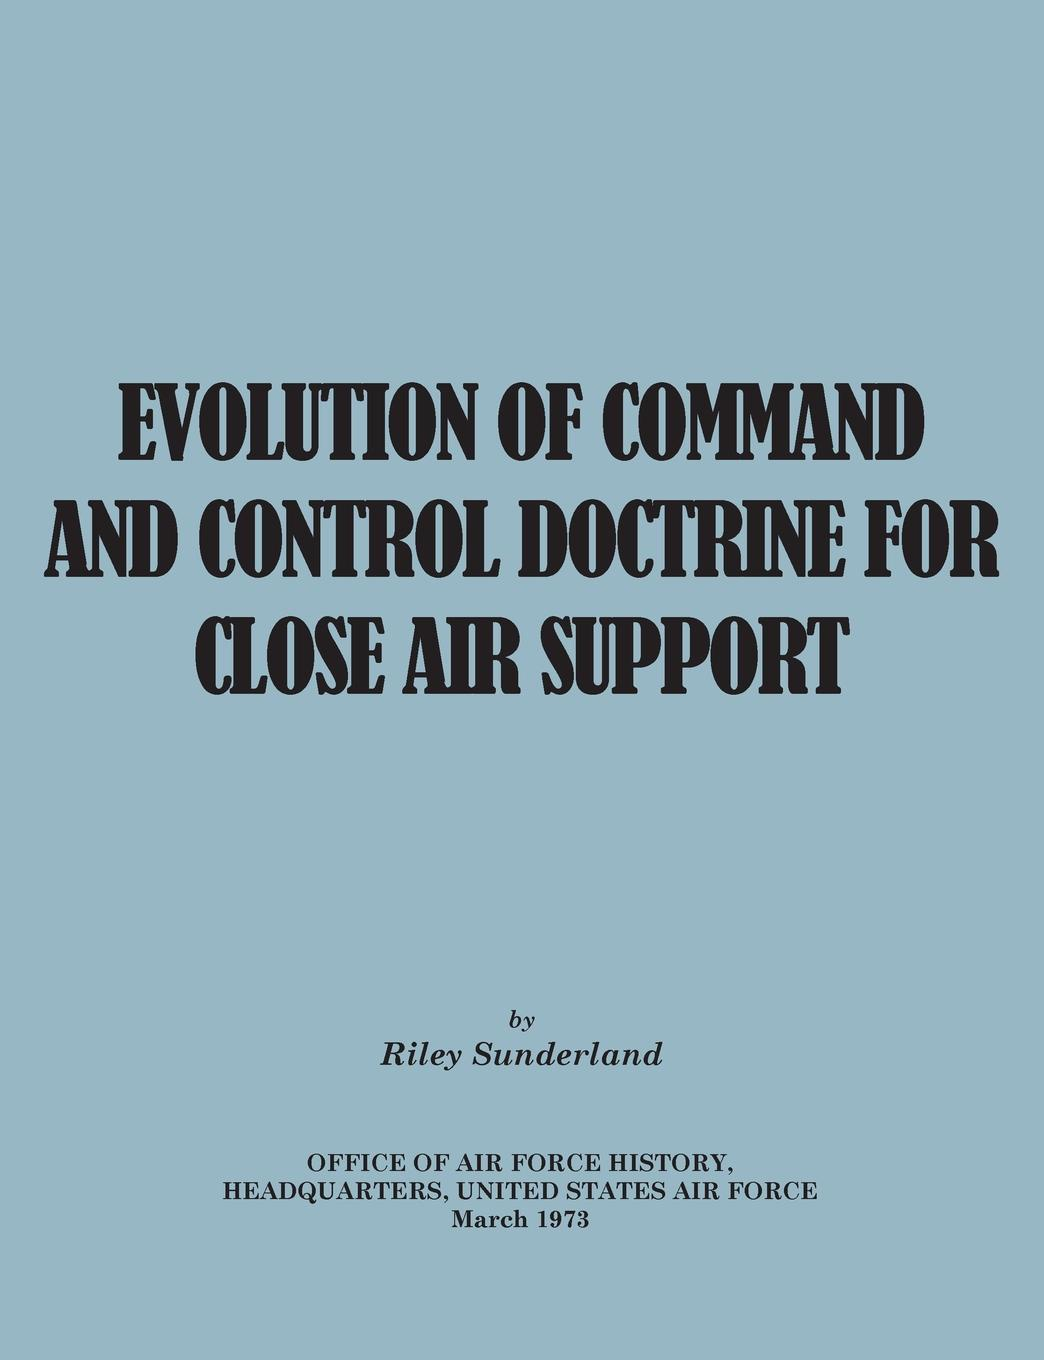 Riley B. Sutherland, Office of Air Force History, United States Air Force Evolution of Command and Control Doctrine for Close Air Support command and control